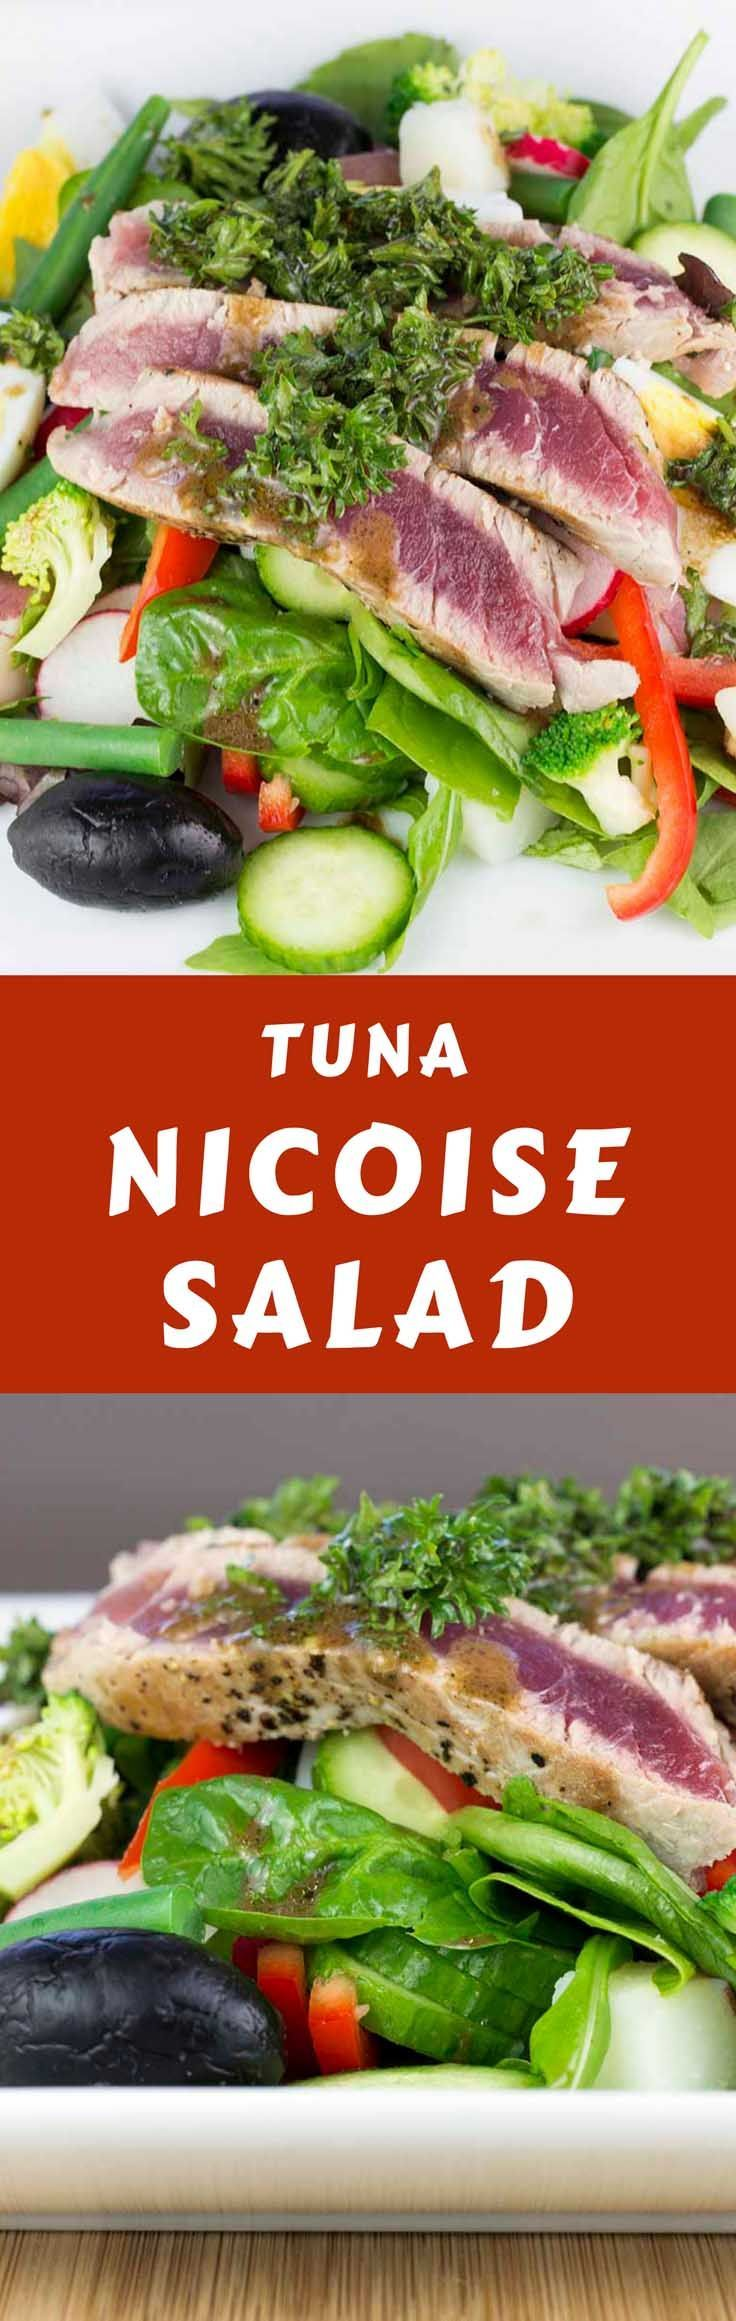 A fresh take on the classic Tuna Nicoise Salad with a slightly spicy parsley and mustard dressing. Super healthy and easy to make. #saladnicoise #lowcarbsalad #ahituna #proteinsalad  via @DiabetesStrong